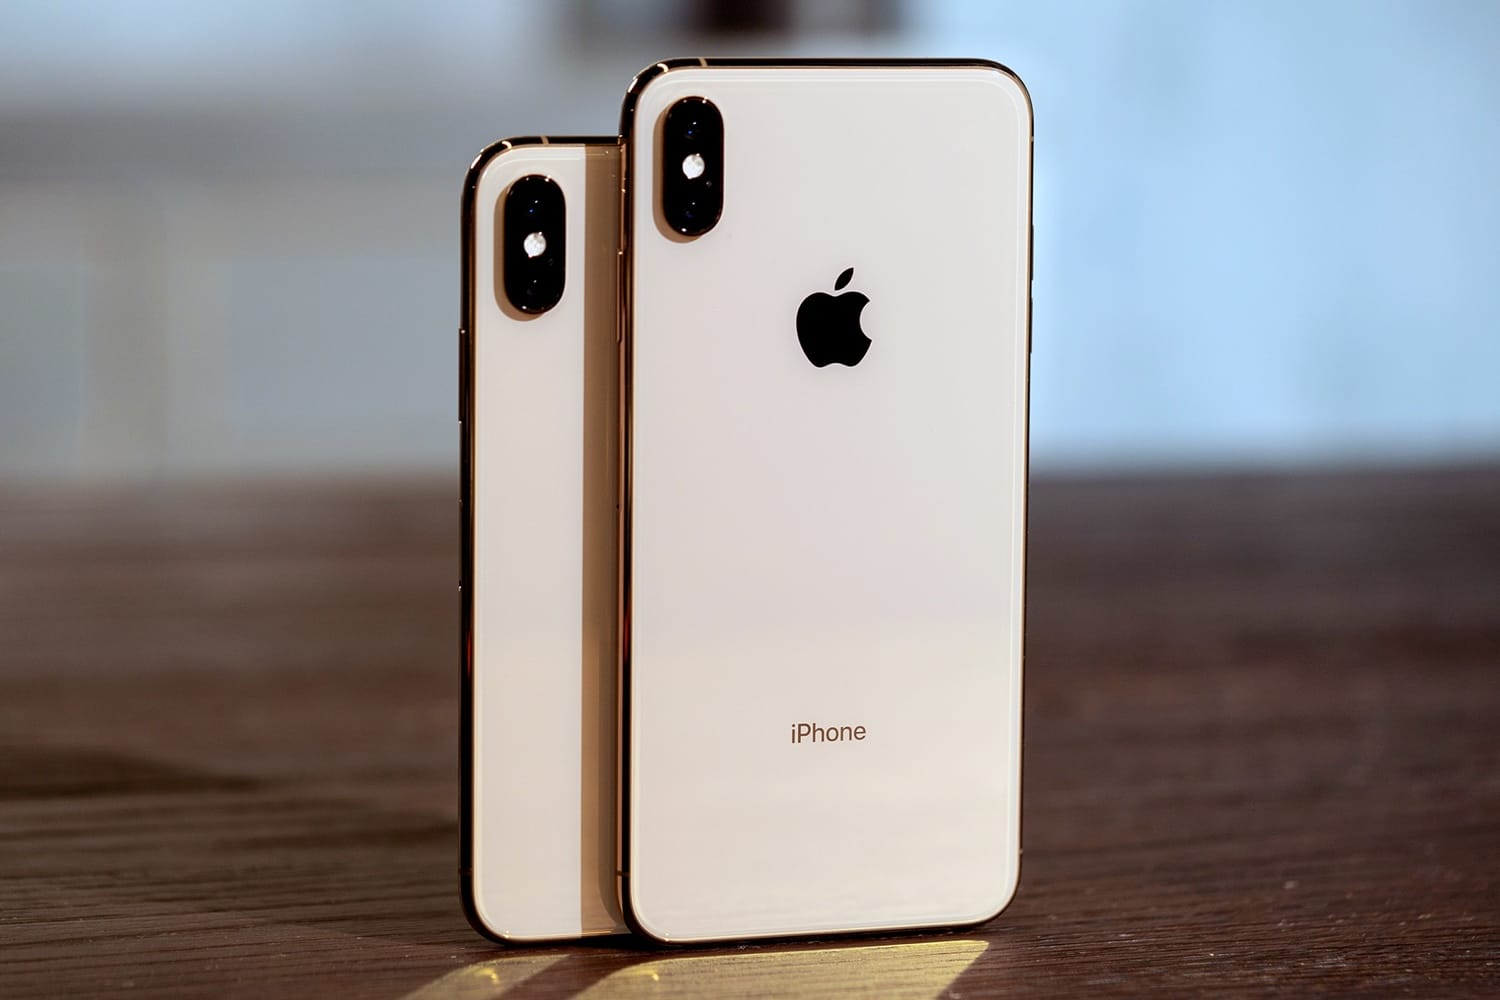 The iPhone XS Max and the Apple Watch Series 4 has surpassed all market expectations